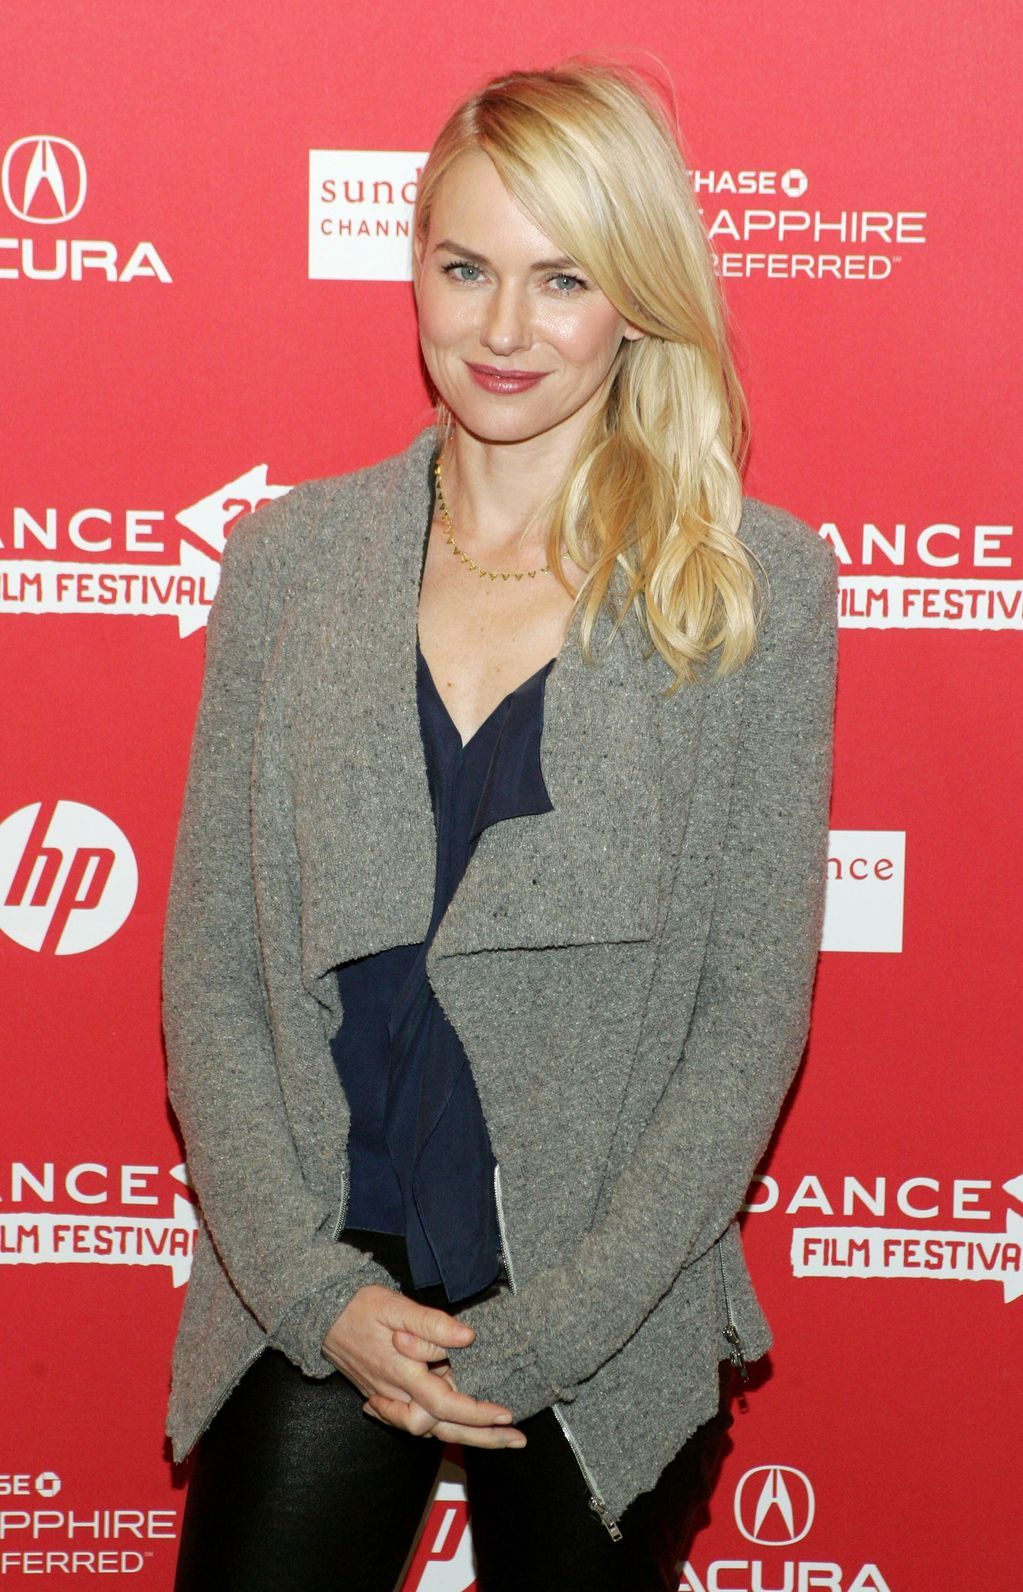 The Lifeguard Premiere - 2013 Sundance Film Festival - January 19, 2013